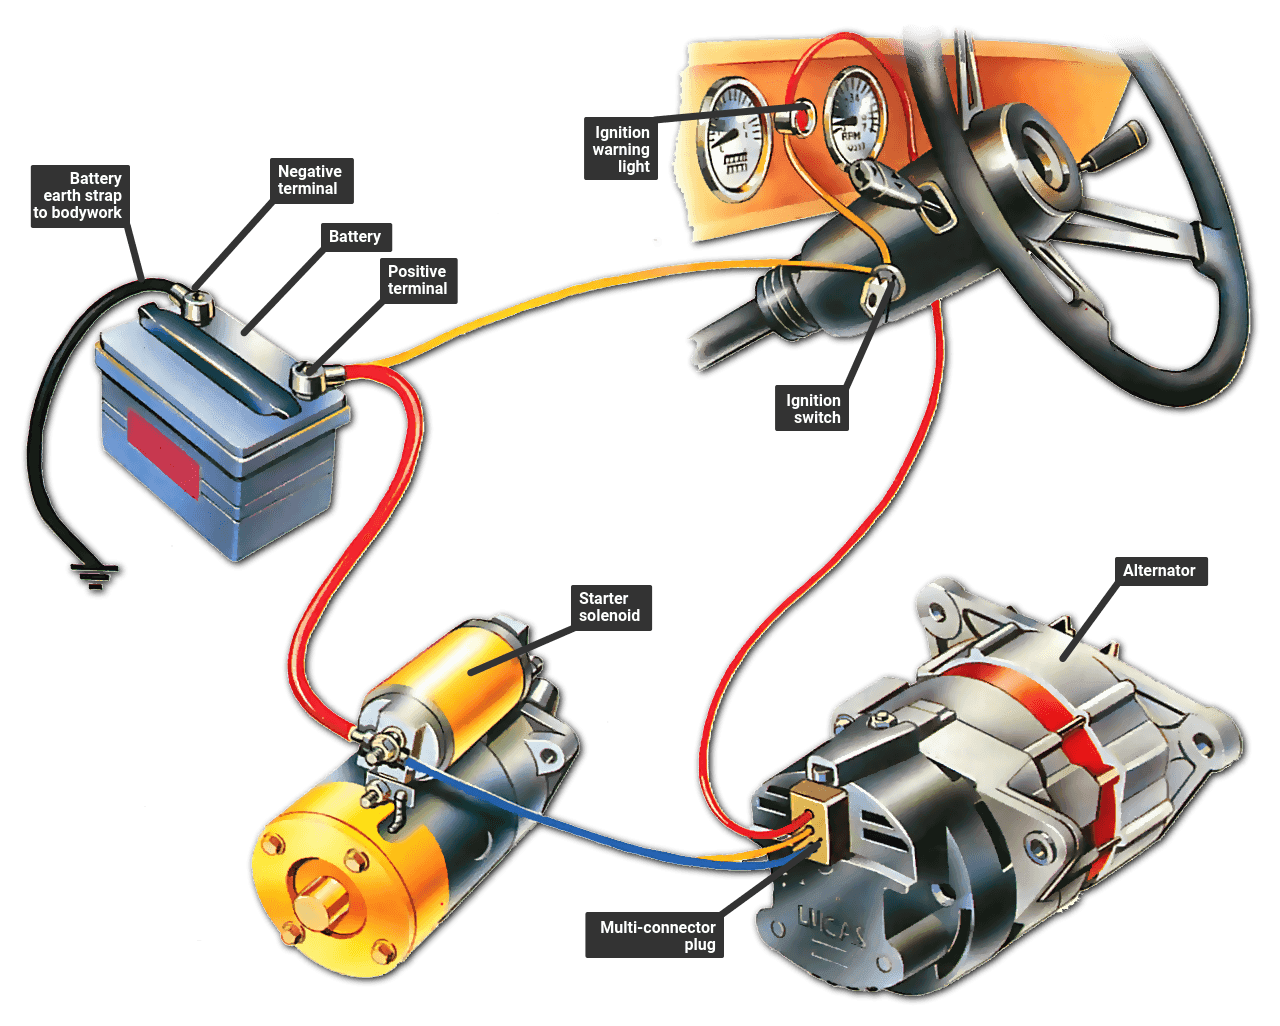 Wiring Harness Tech What You Need To Know To Install Your Spotlights